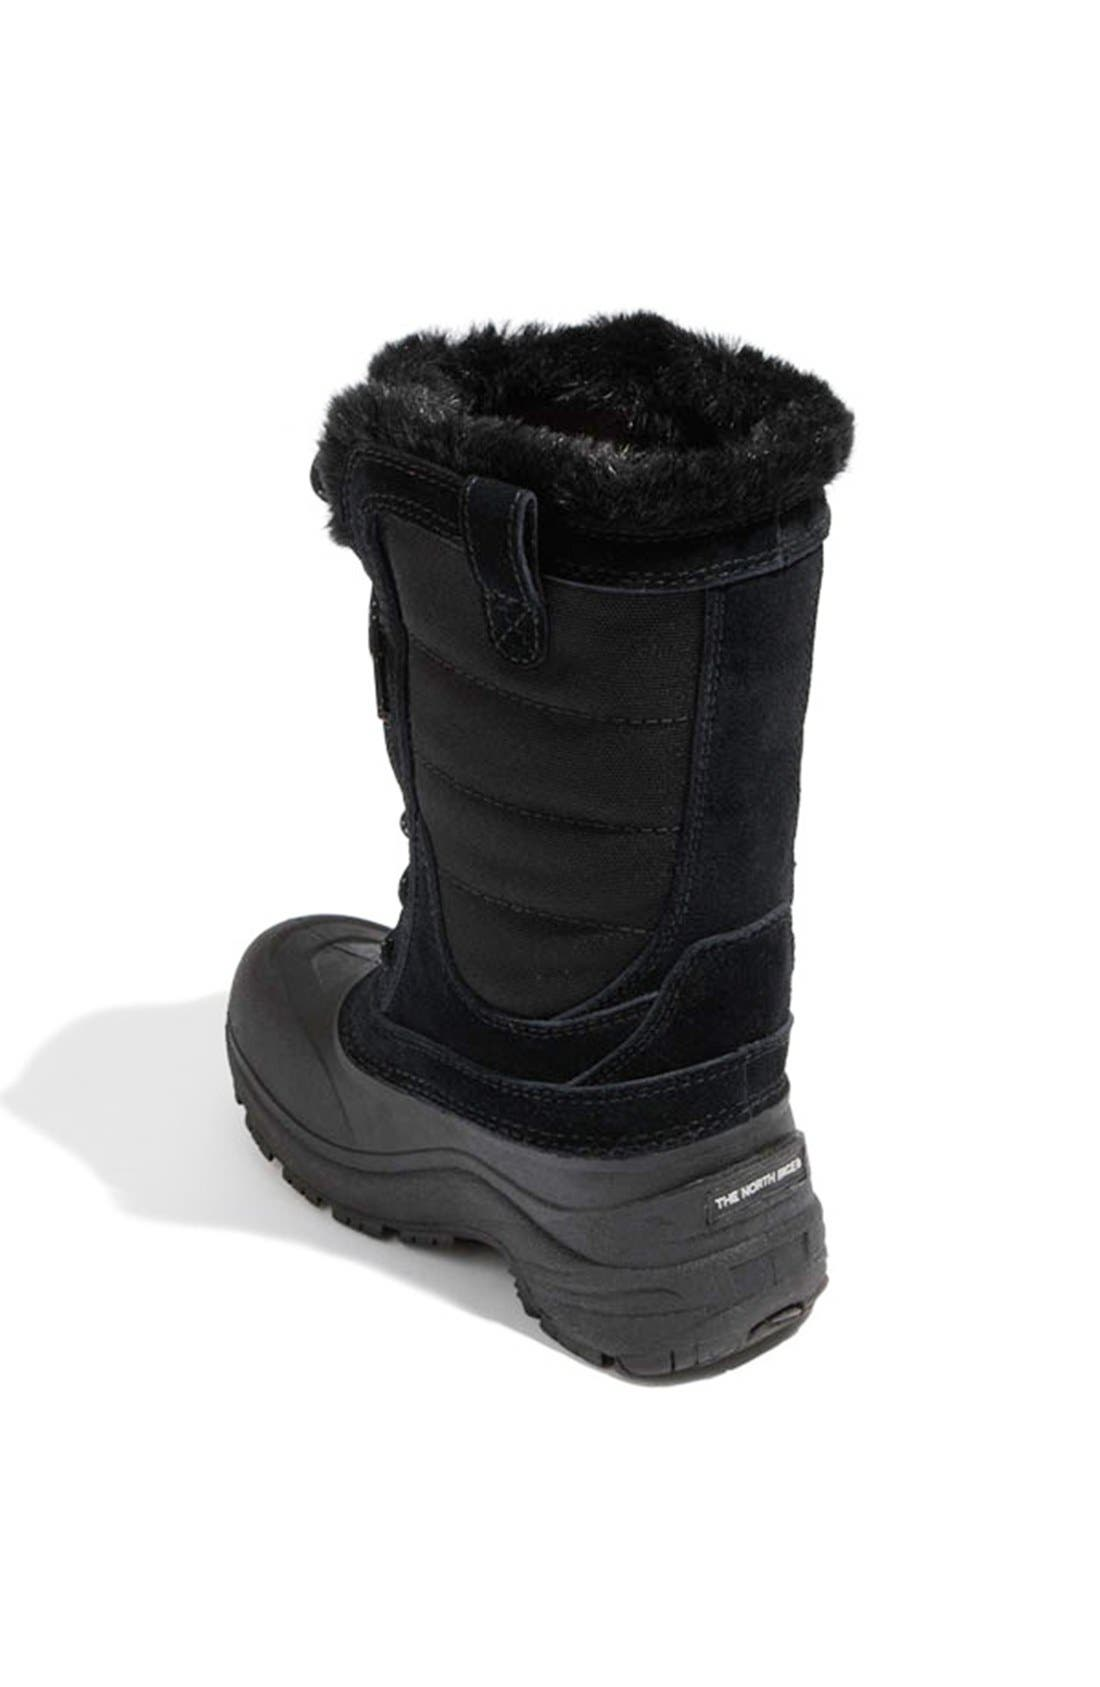 Alternate Image 2  - The North Face 'Shellista' Boot (Toddler, Little Kid & Big Kid)